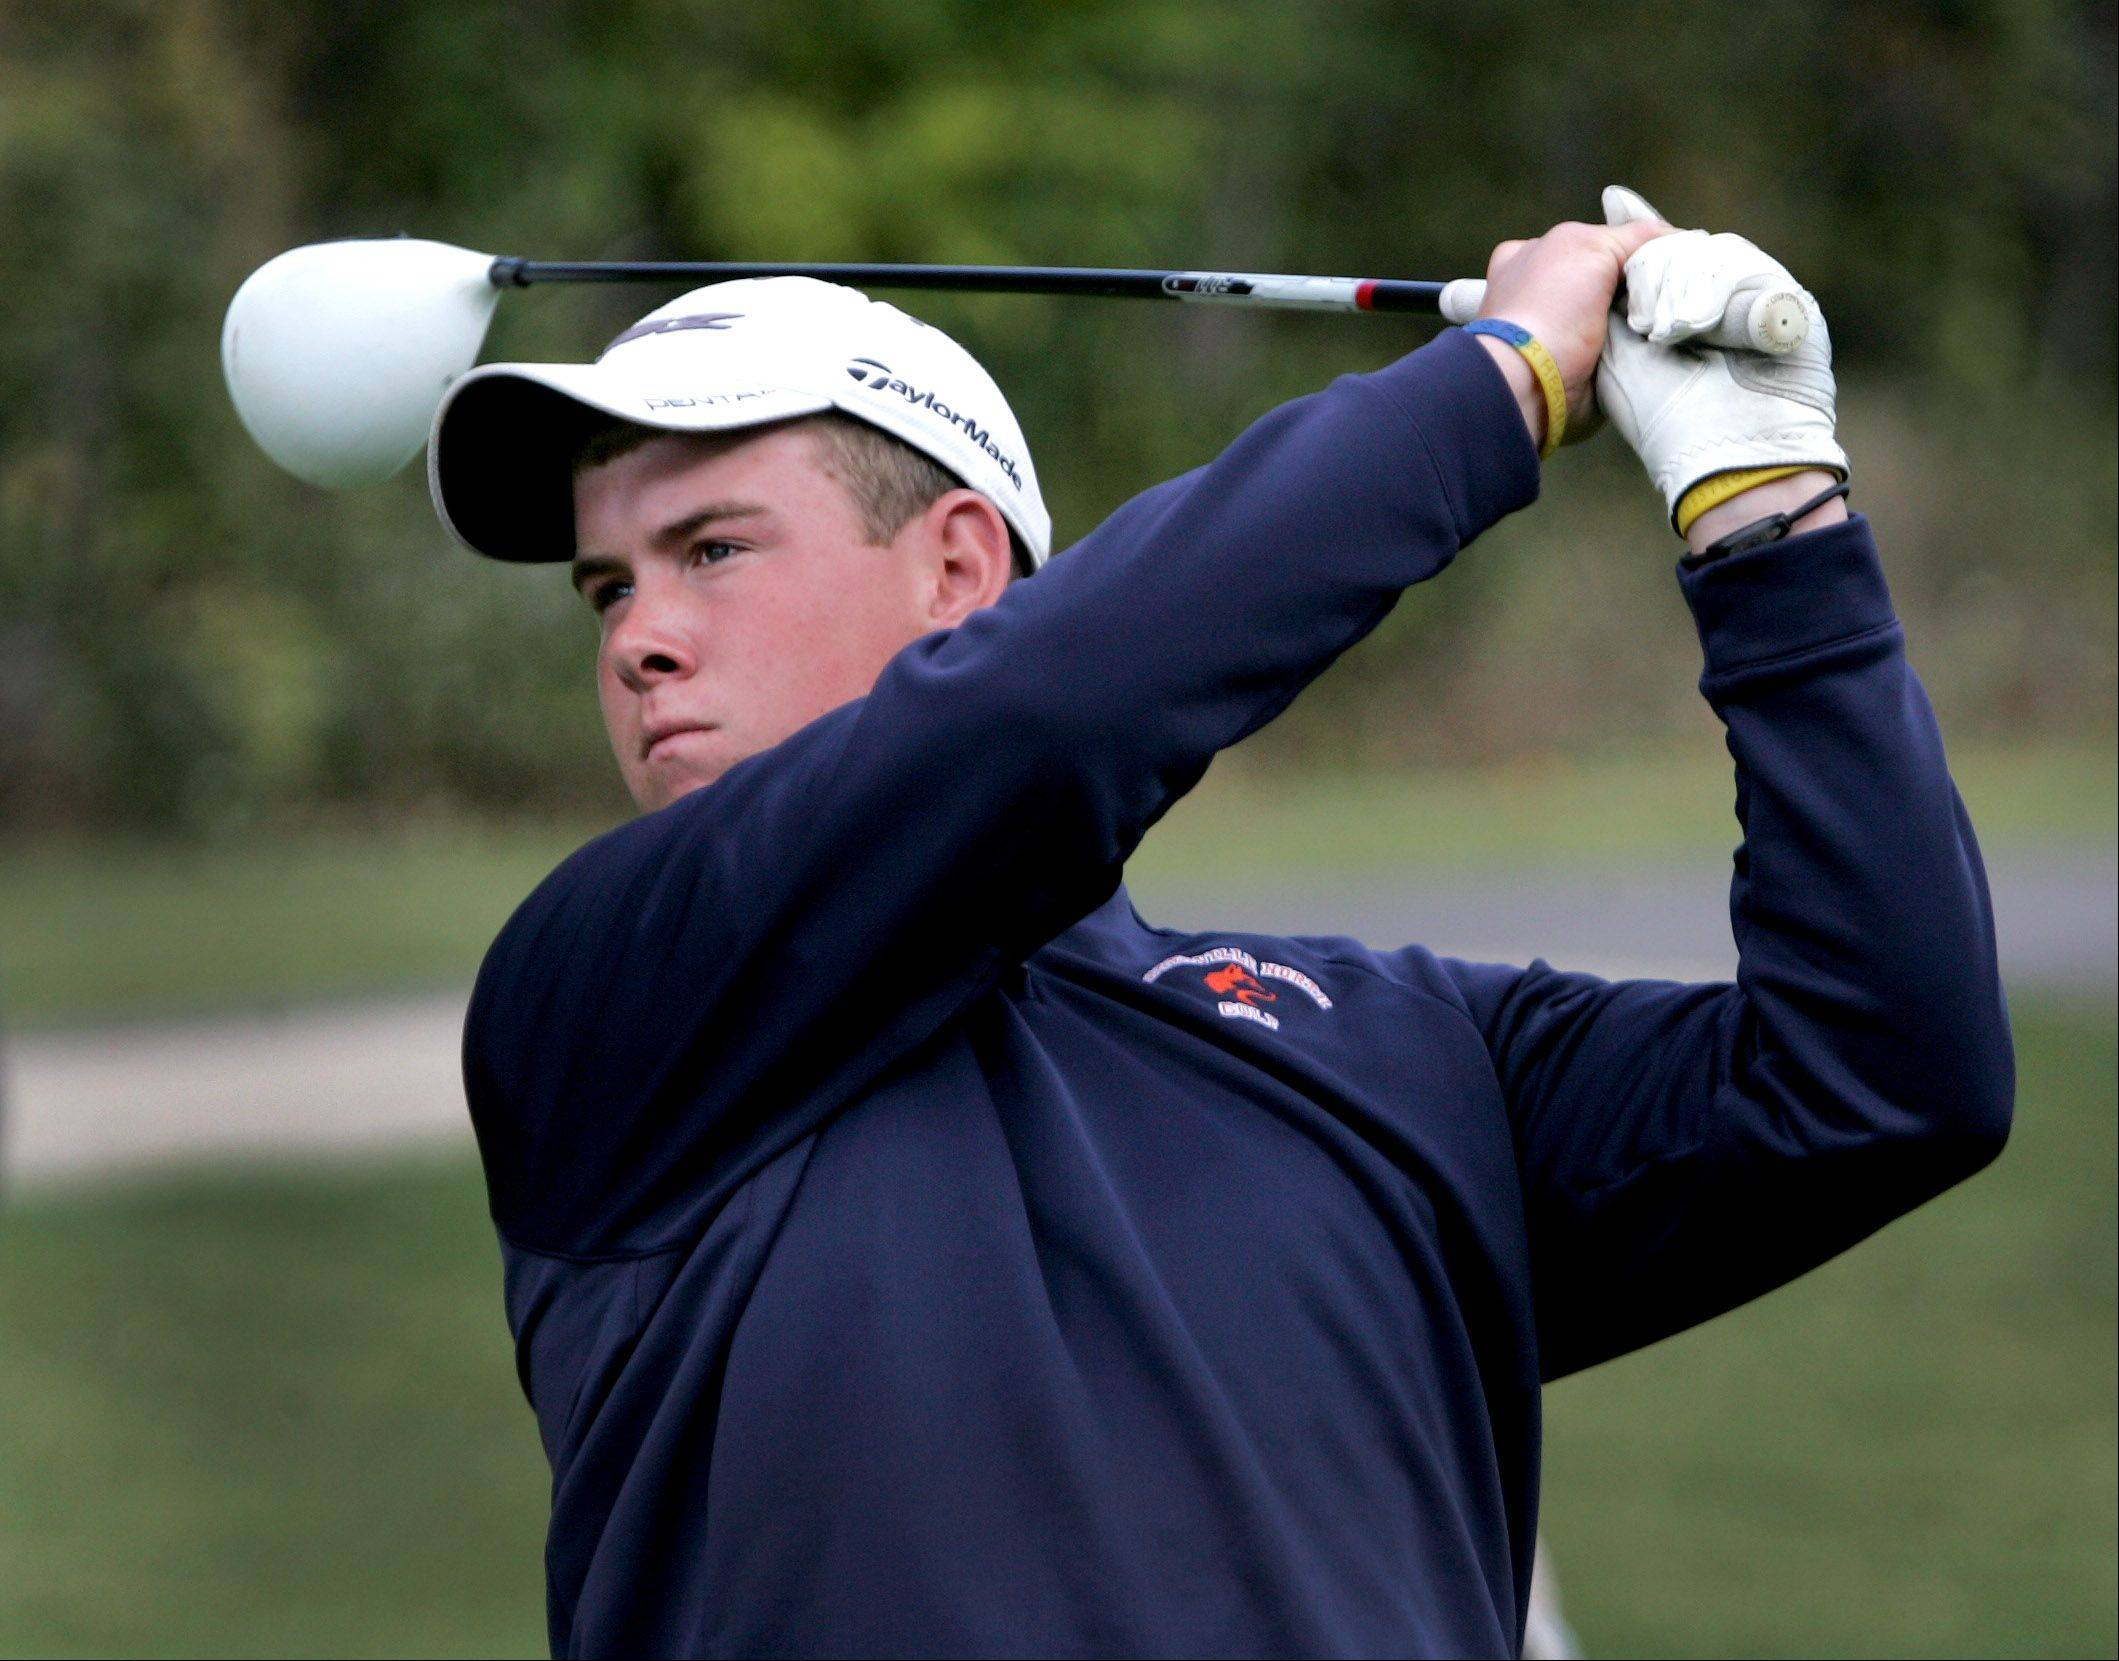 Raymond Knoll of Naperville North watches his drive from the 6th tee during DuPage Valley Conference boys golf at Bartlett Hills Golf course on Thursday.